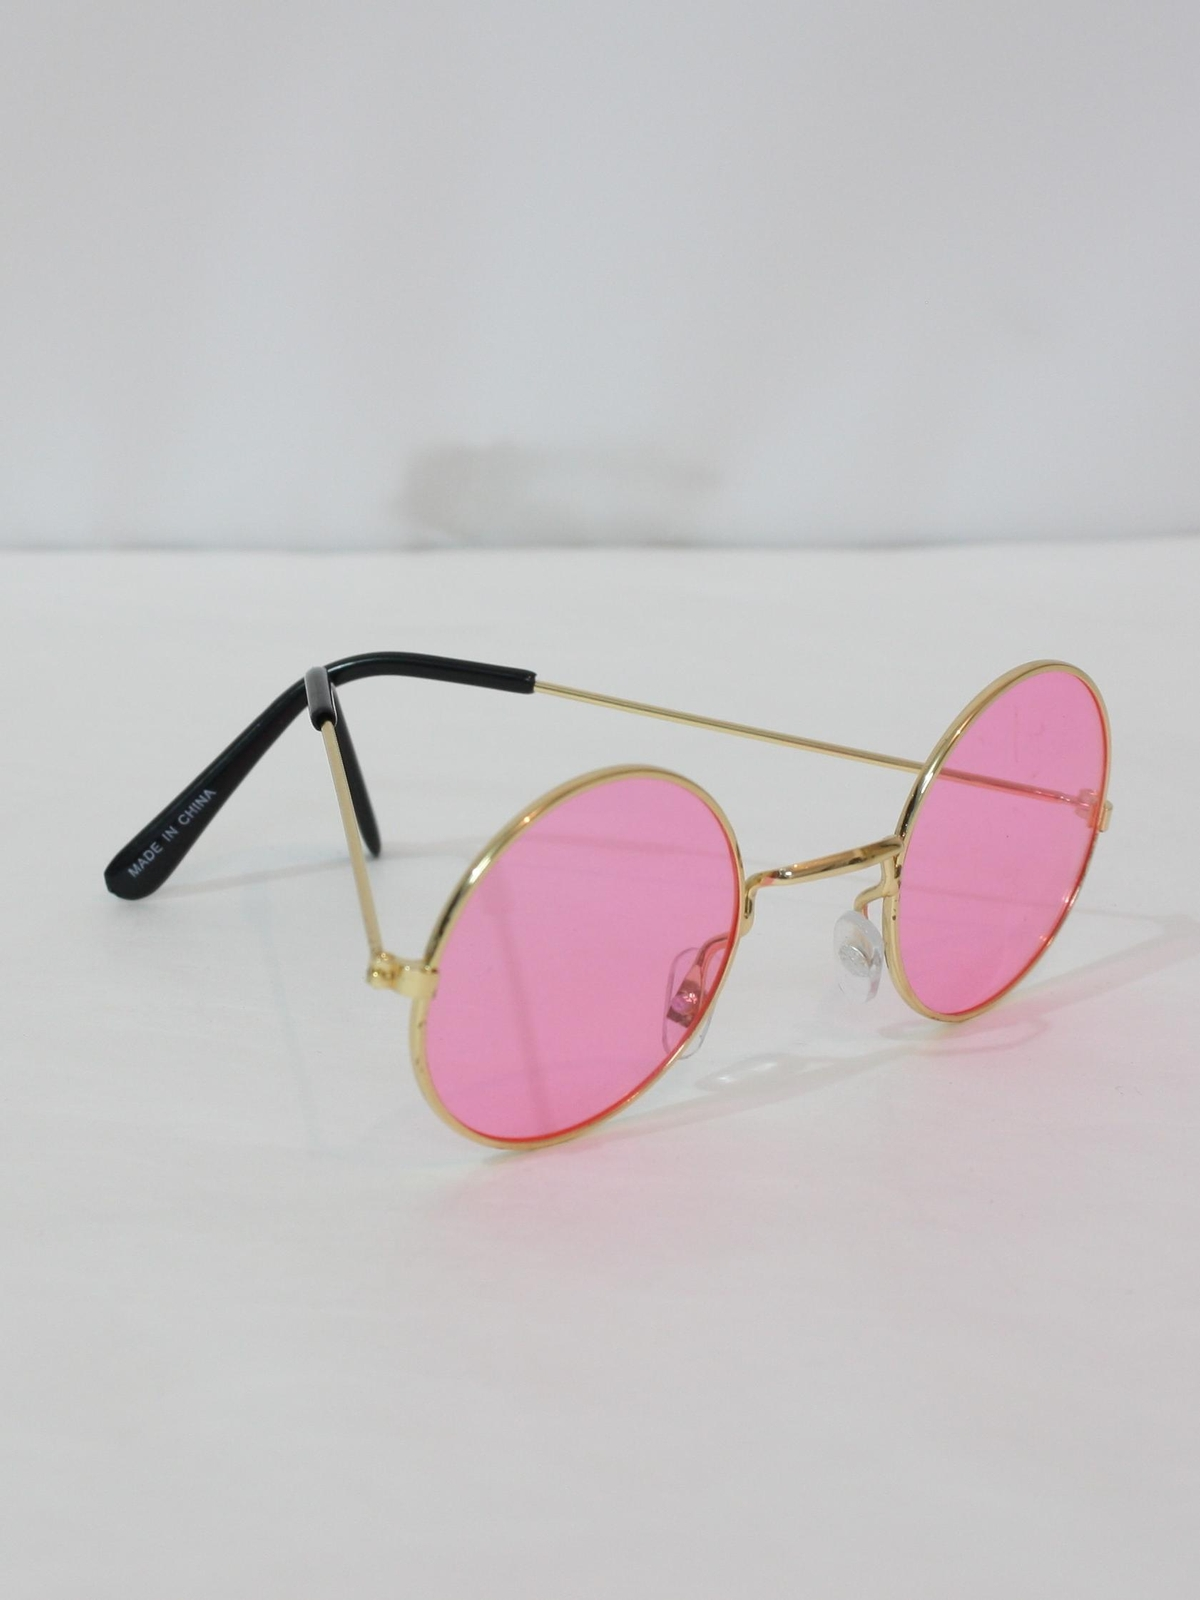 8dbb0e98e9 Vintage 70s Glasses  70s style (made recently) -Round Hippie Glasses-  Unisex John Lennon style gold metal round frame with bright pink lens  sunglasses.